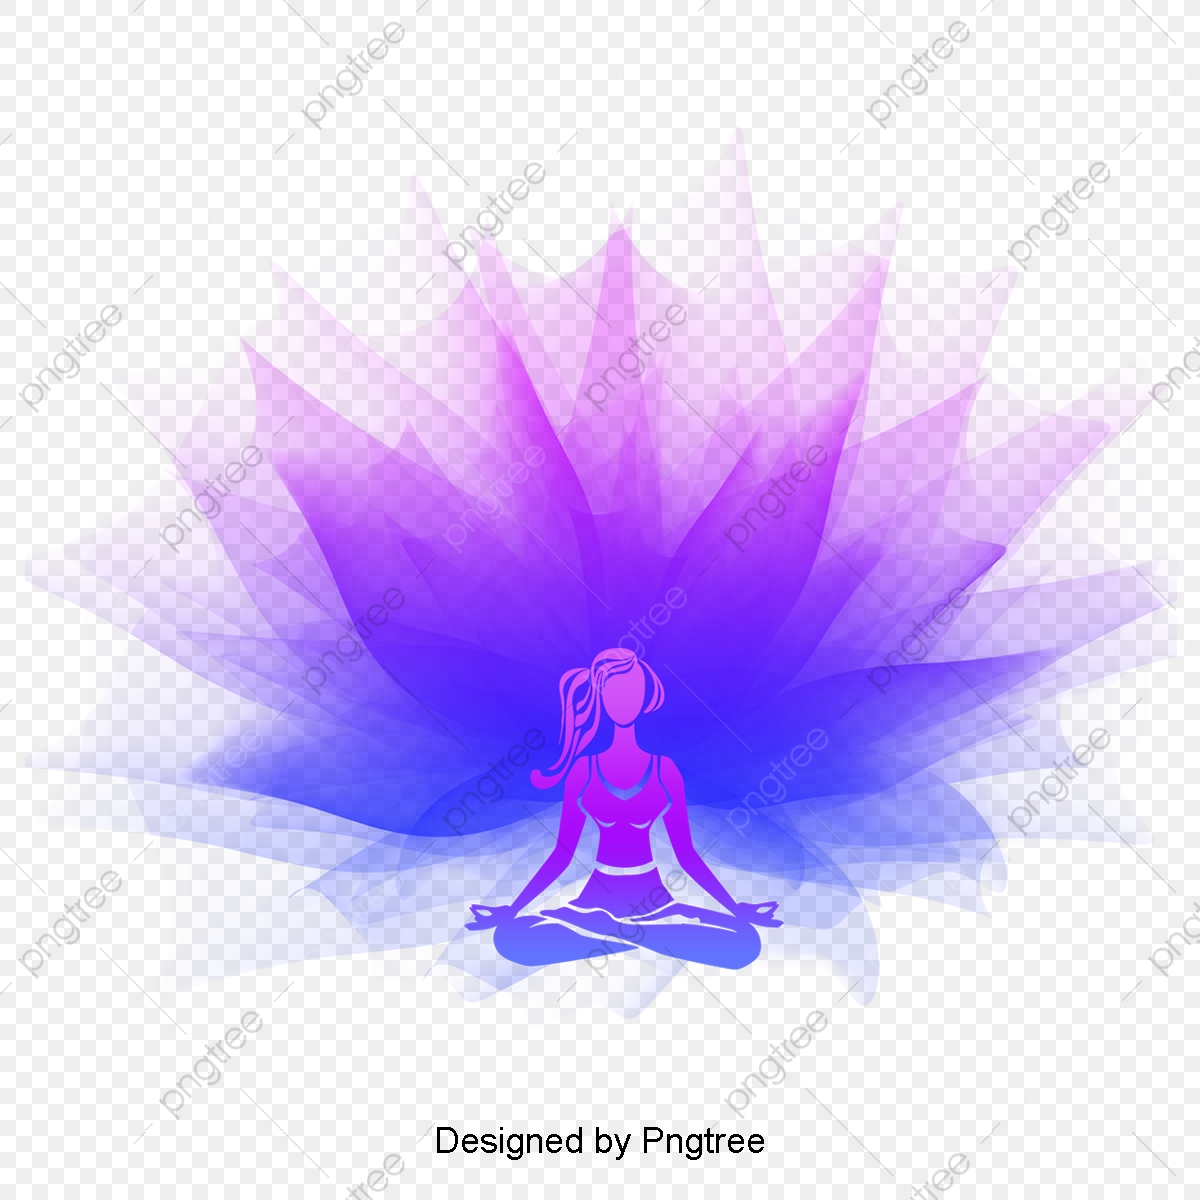 Simple Cartoon Beauty Yoga Decorative Pattern Yoga Purple Color Png Transparent Clipart Image And Psd File For Free Download